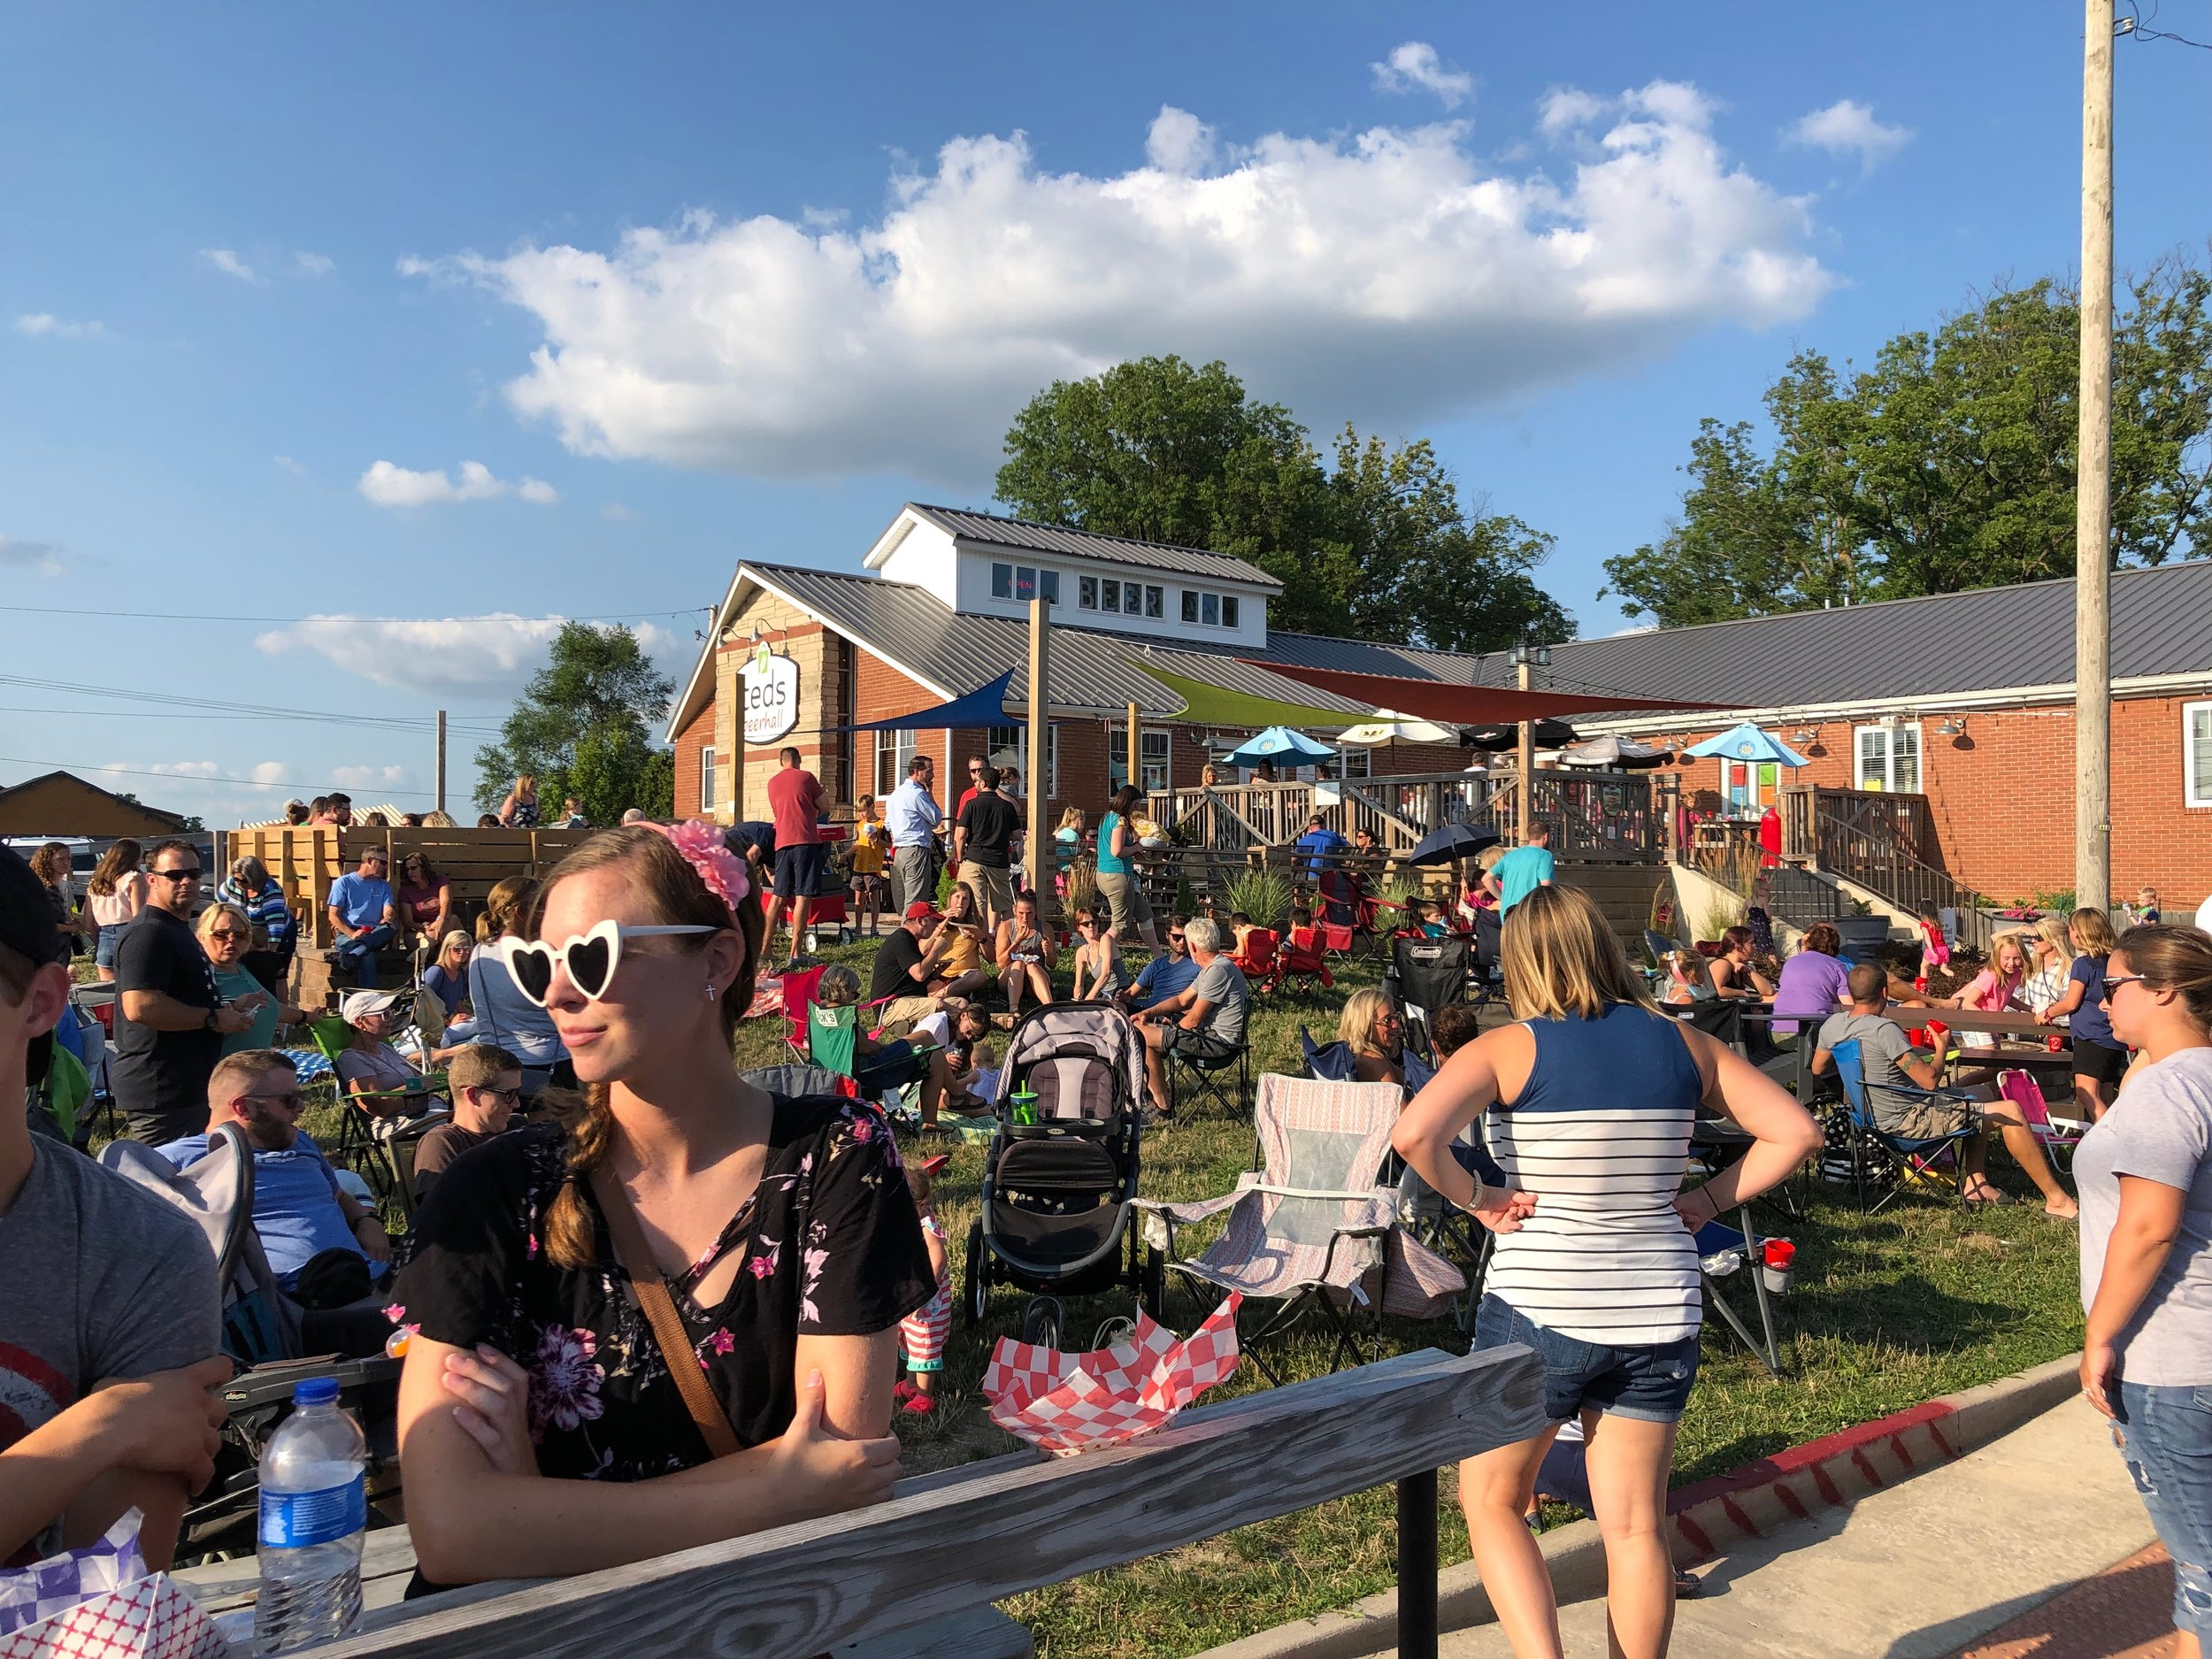 All summer long - We feature Food Truck Thursdays from the first Thursday in May to the last Thursday in September, featuring some of the best in Indiana mobile cuisine, and live acoustic music.